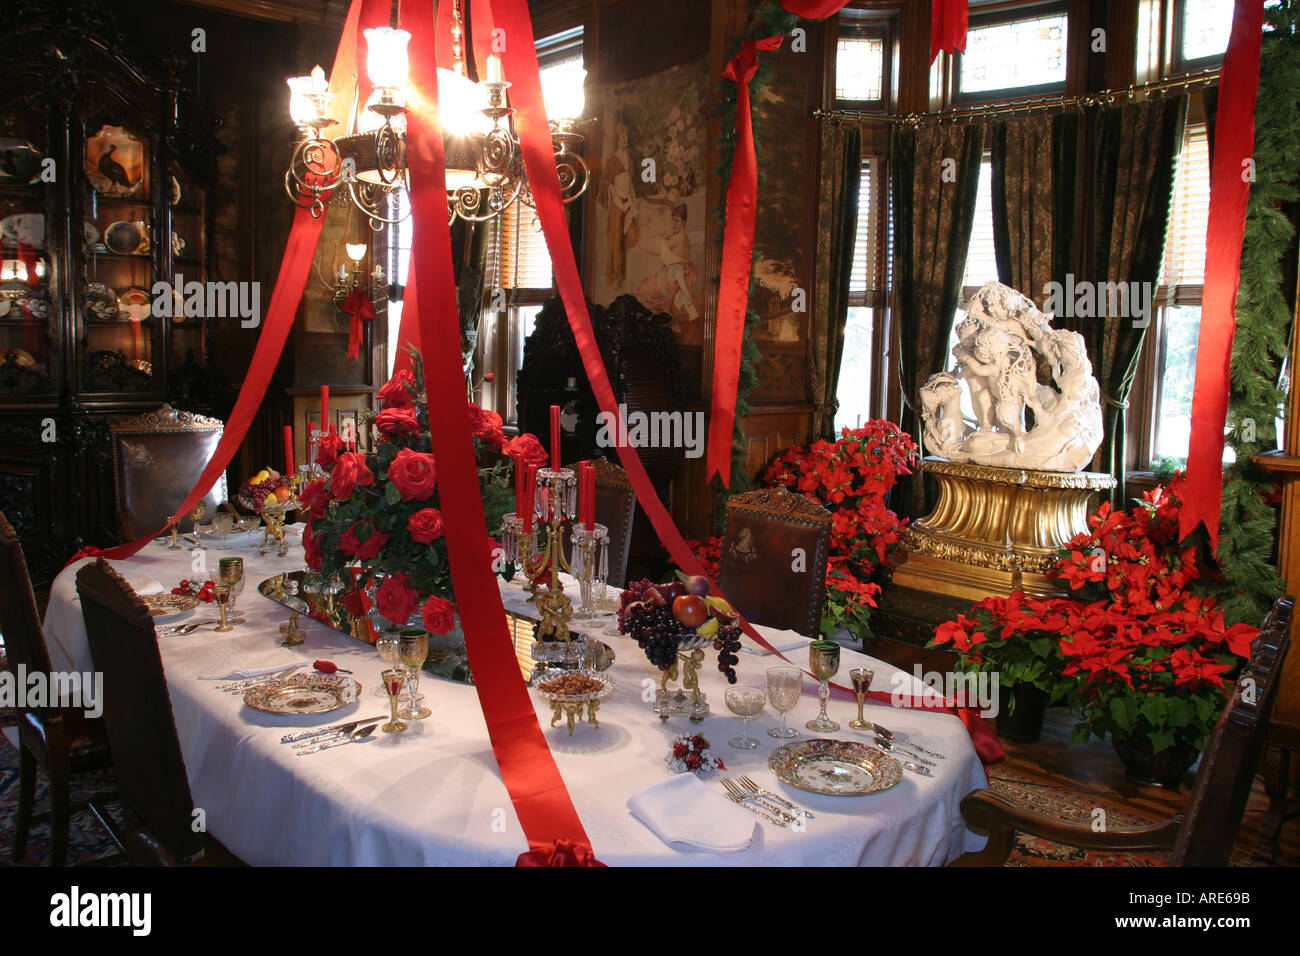 Richmond Virginia Maymont House dining room Christmas decor Romanesque Revival Queen Anne - Stock Image